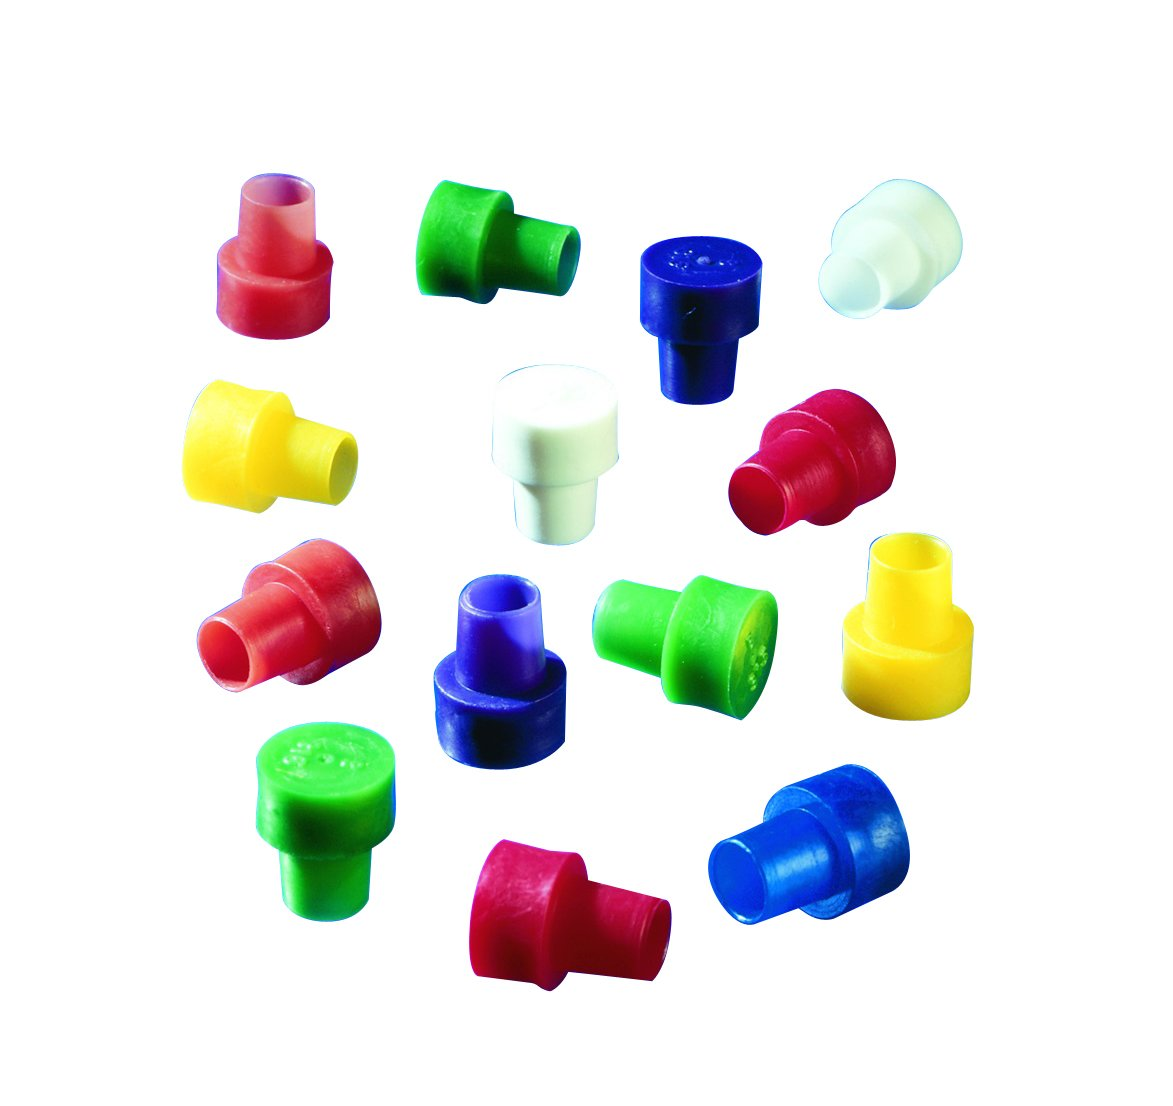 Wilmad 521-ASST-1000 Lab Glass Disposable Caps for 5 mm OD NMR Tubes (Pack of 1000) by Wilmad (Image #1)